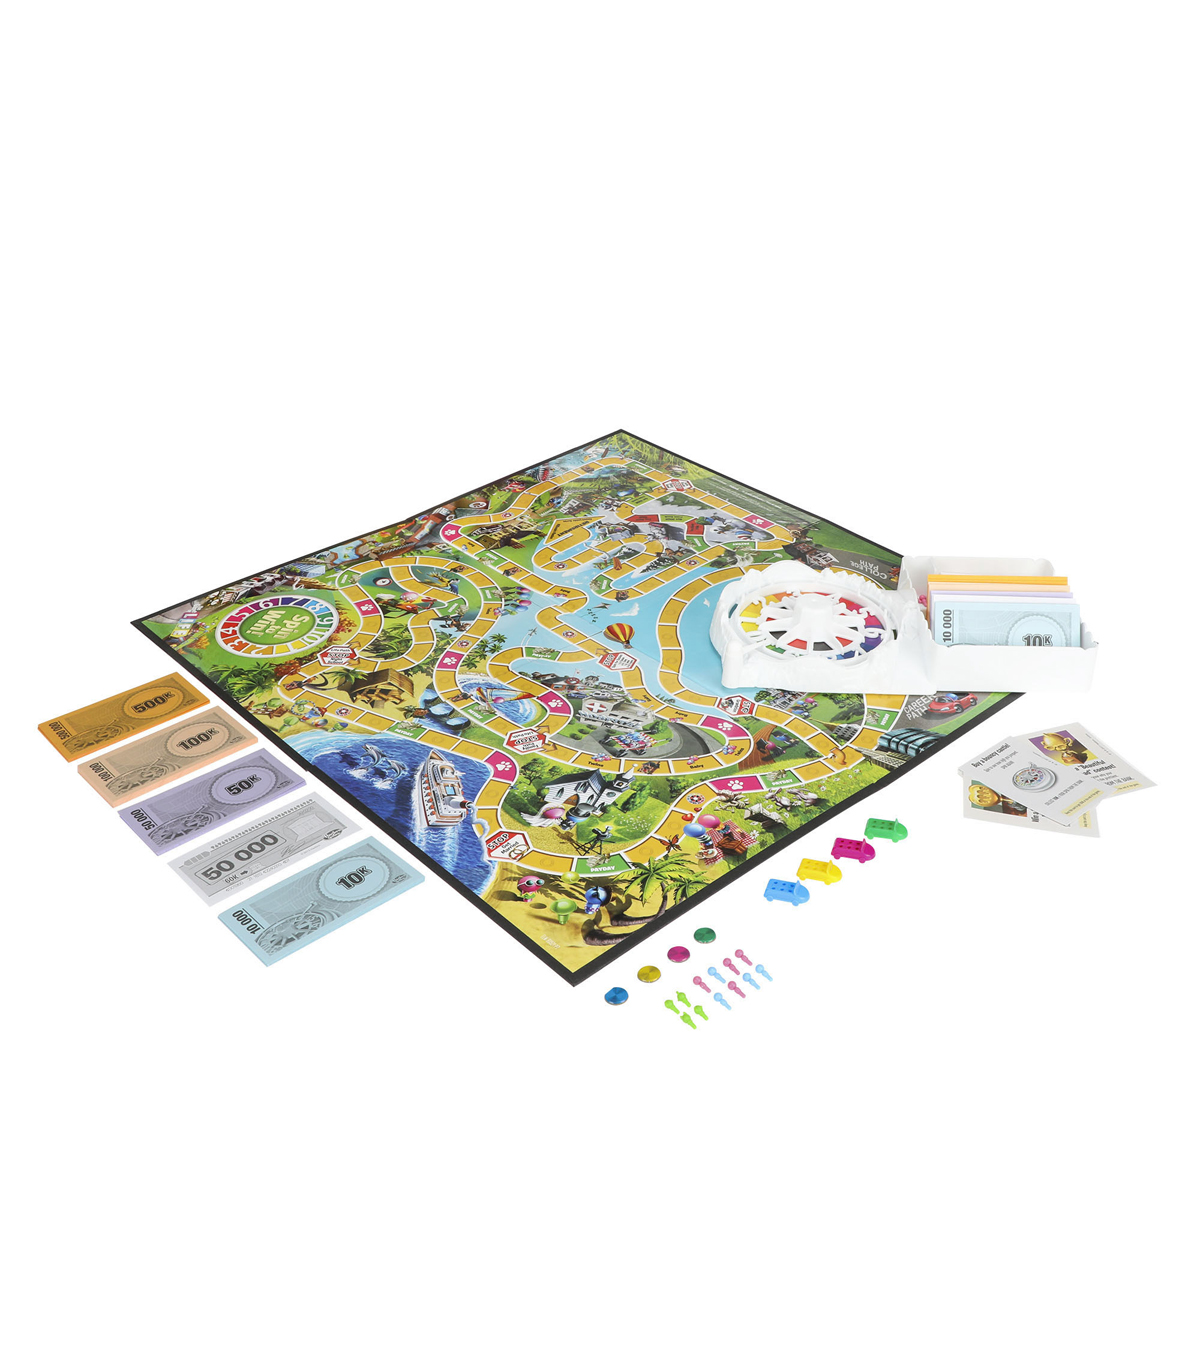 Hasbro Gaming The Game of Life Kit